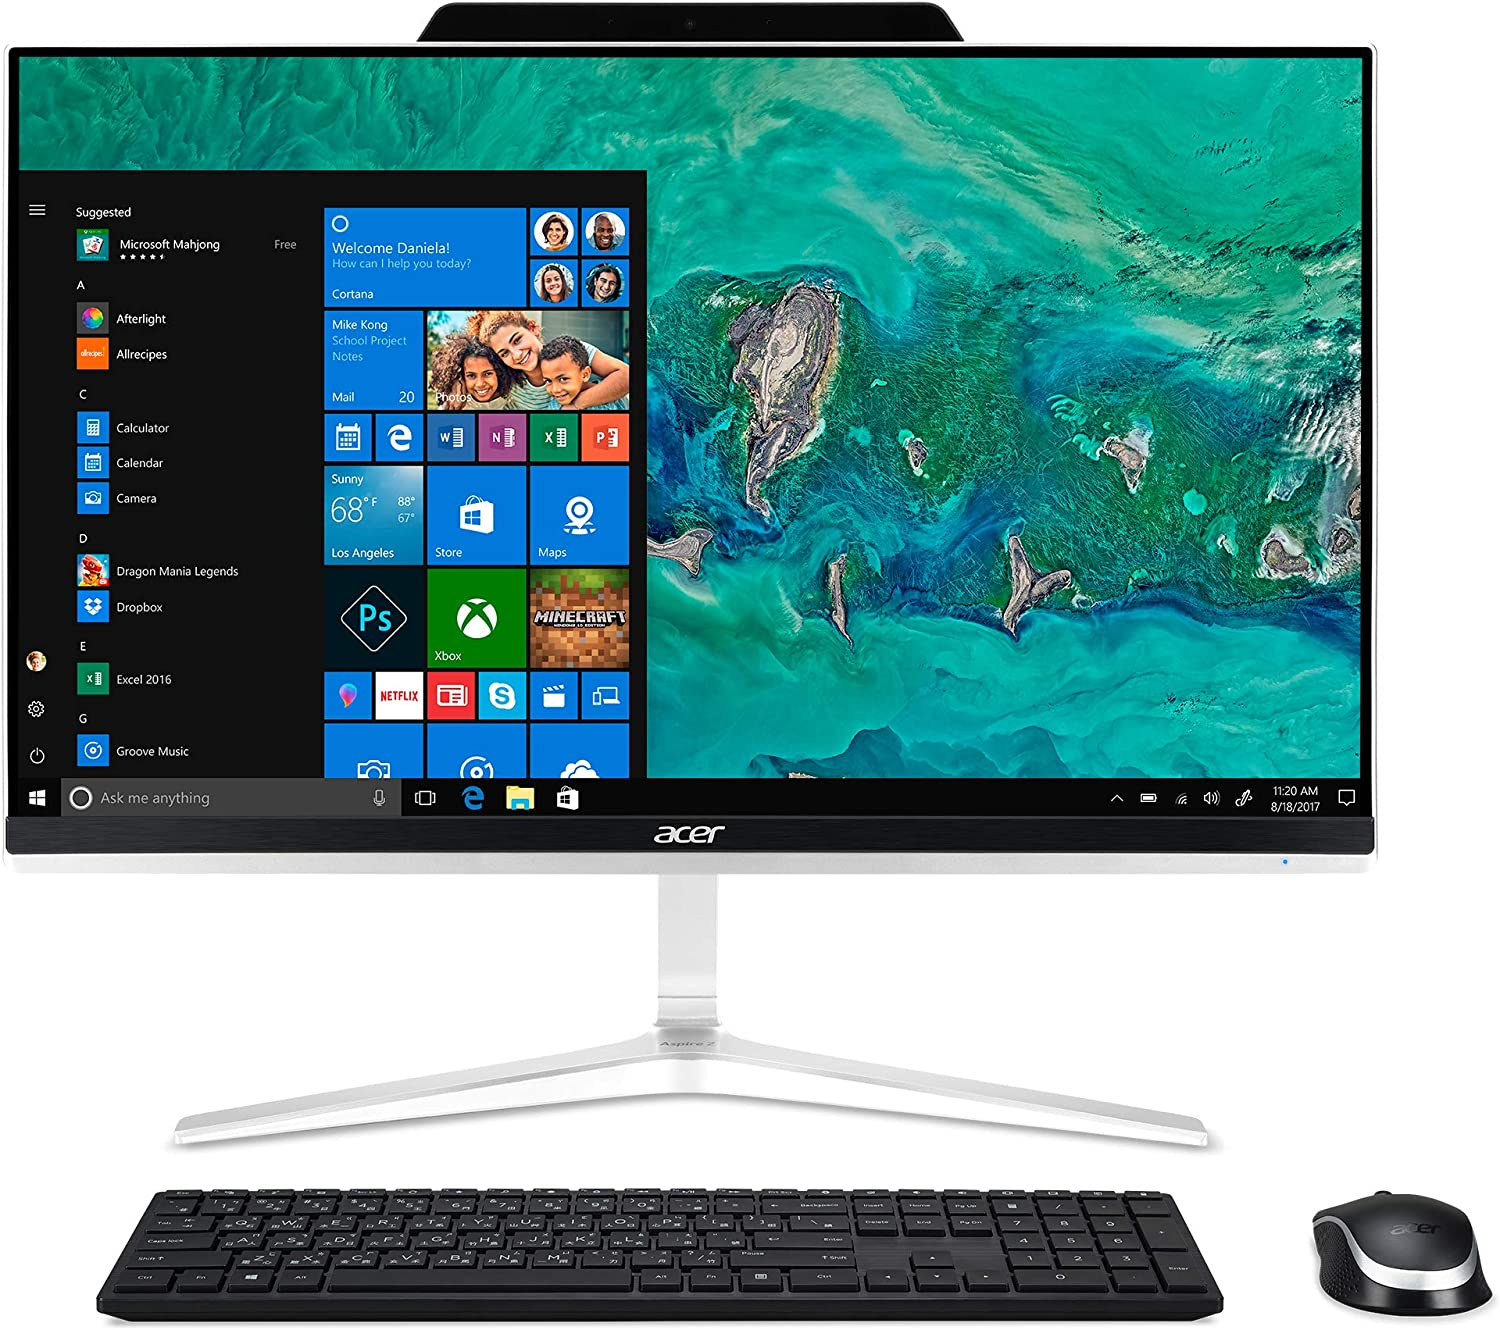 "Acer Aspire Z24-890-UA91 AIO Desktop, 23.8"" Full HD, 9th Gen Intel Core i5-9400T, 12GB DDR4, 512GB SSD, 802.11ac WiFi, USB 3.1 Type C, Wireless Keyboard and Mouse, Windows 10 Home, Silver"